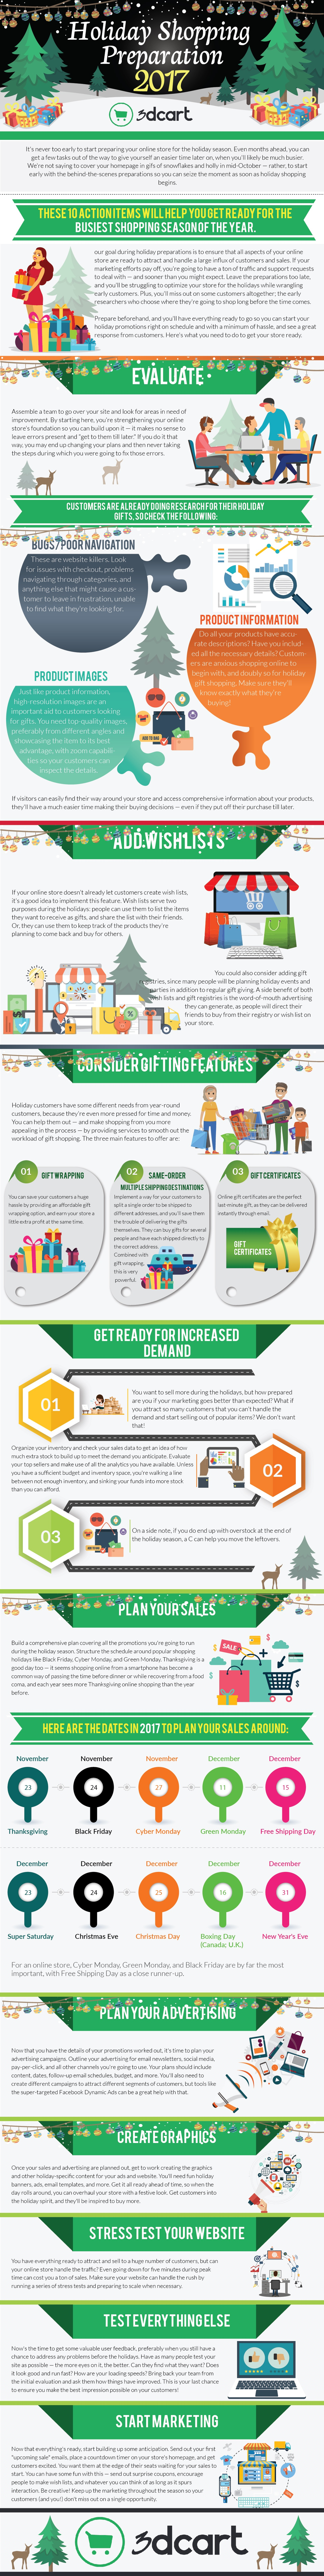 holiday-preparations-infographic-2017.jpg